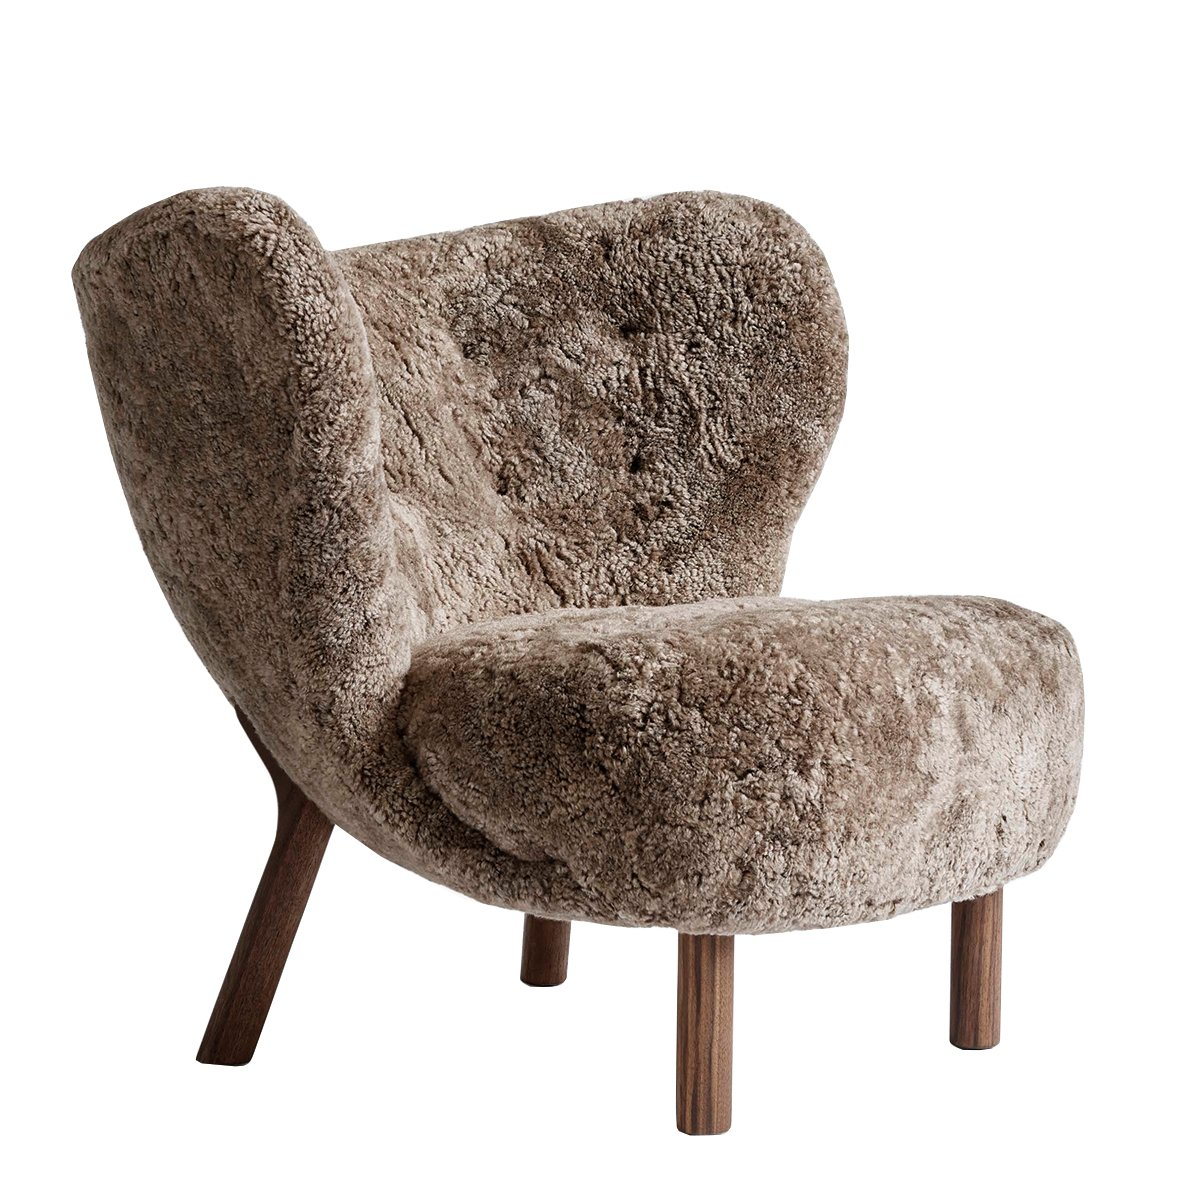 &tradition Little Petra Fauteuil - Sahara Schapenvacht - Walnoot